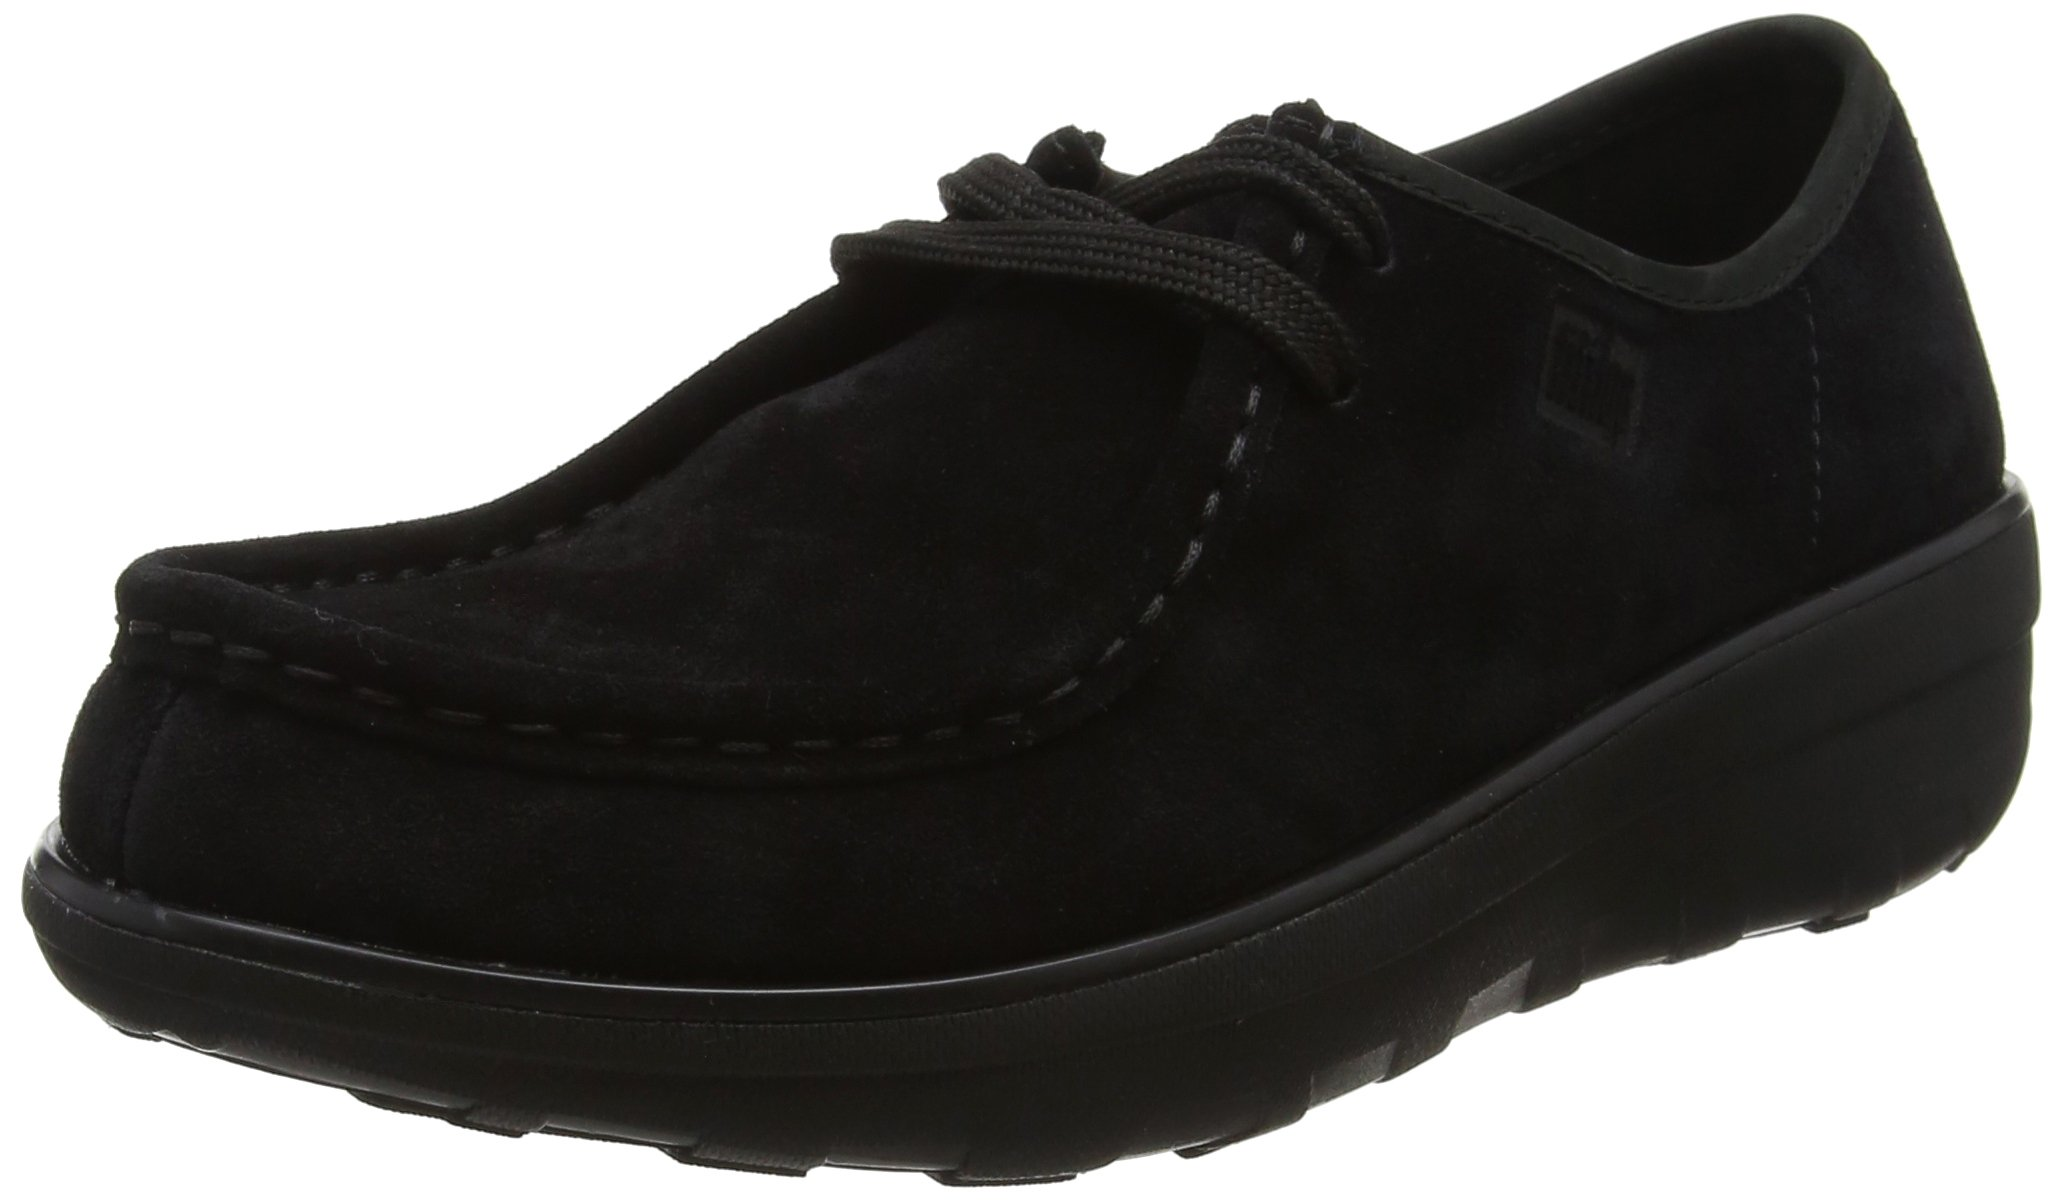 FemmeNoirblack41 Eu Lace Fitflop MocMoccasin Loaff up rxoeQBdCW